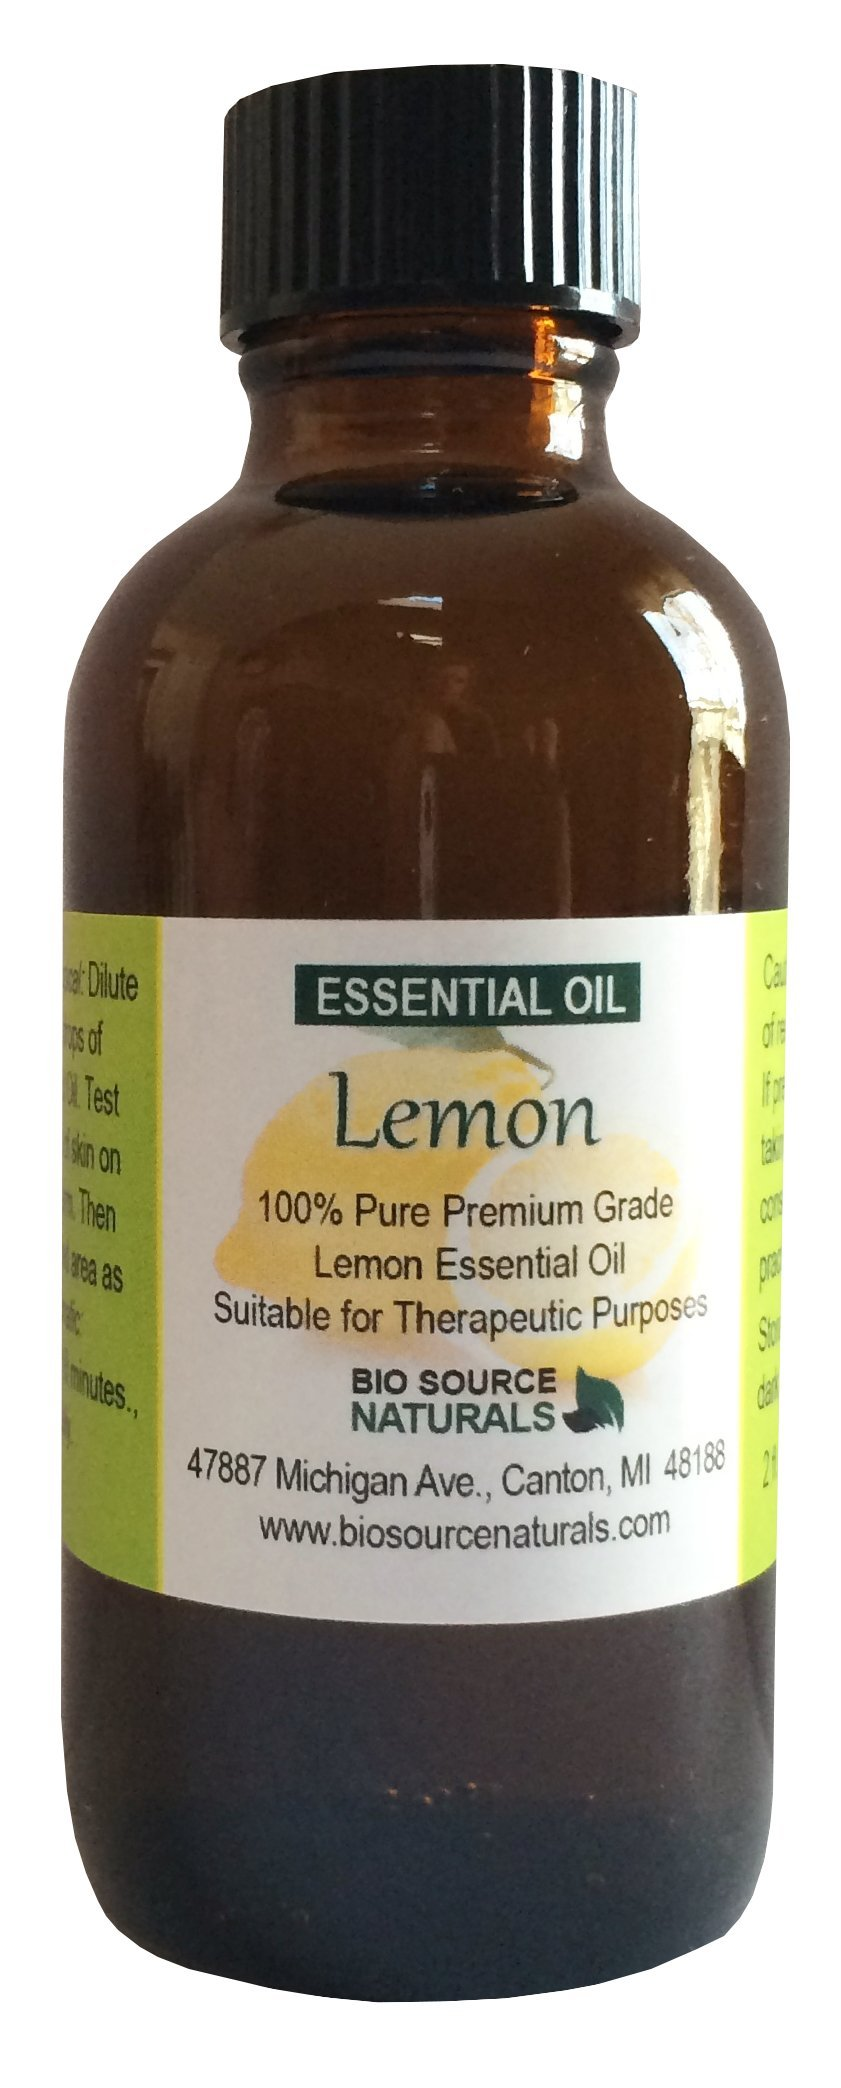 Lemon (Citrus limonum) Pure Essential Oil from Italy 4 fl oz / 120 ml - with COA - Therapeutic Quality, 100% Pure, Undiluted, Concentrated